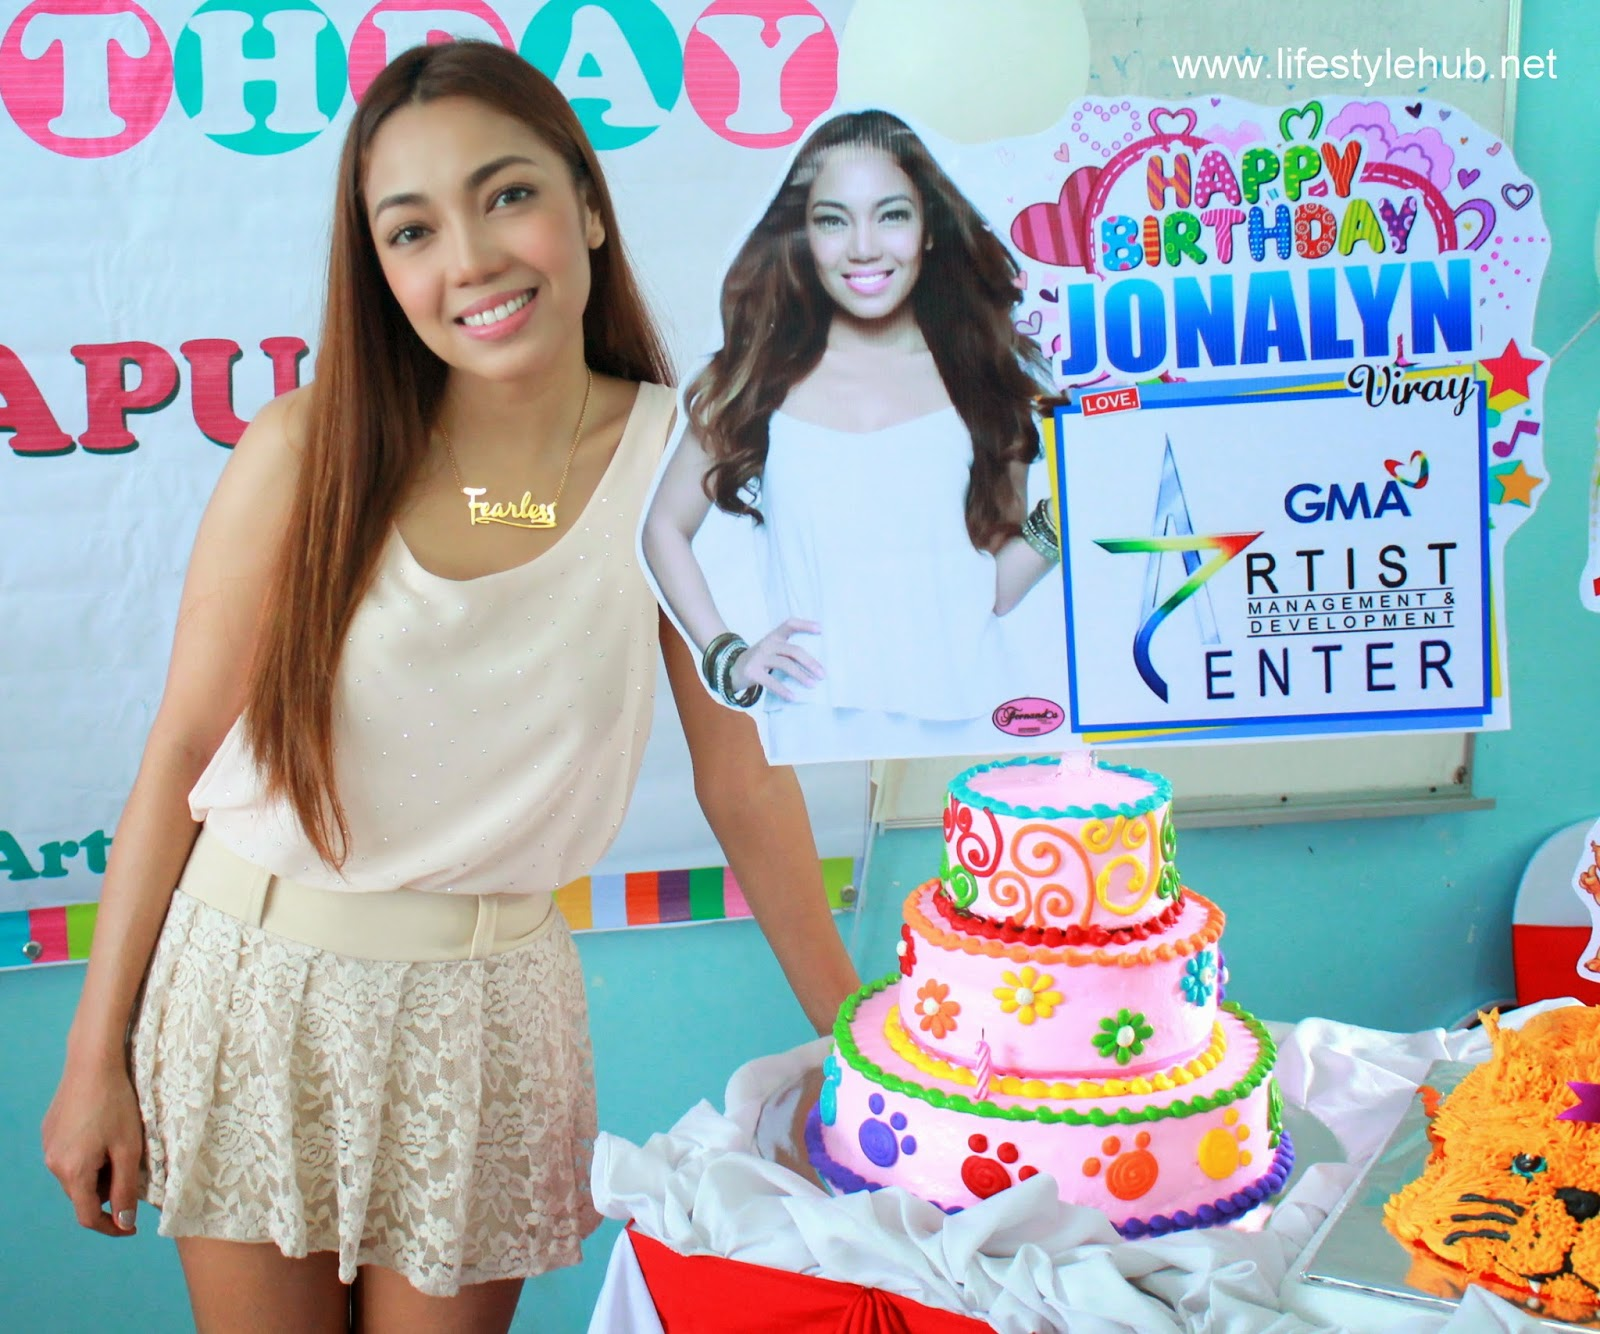 jonalyn viray birthday celebration fearless